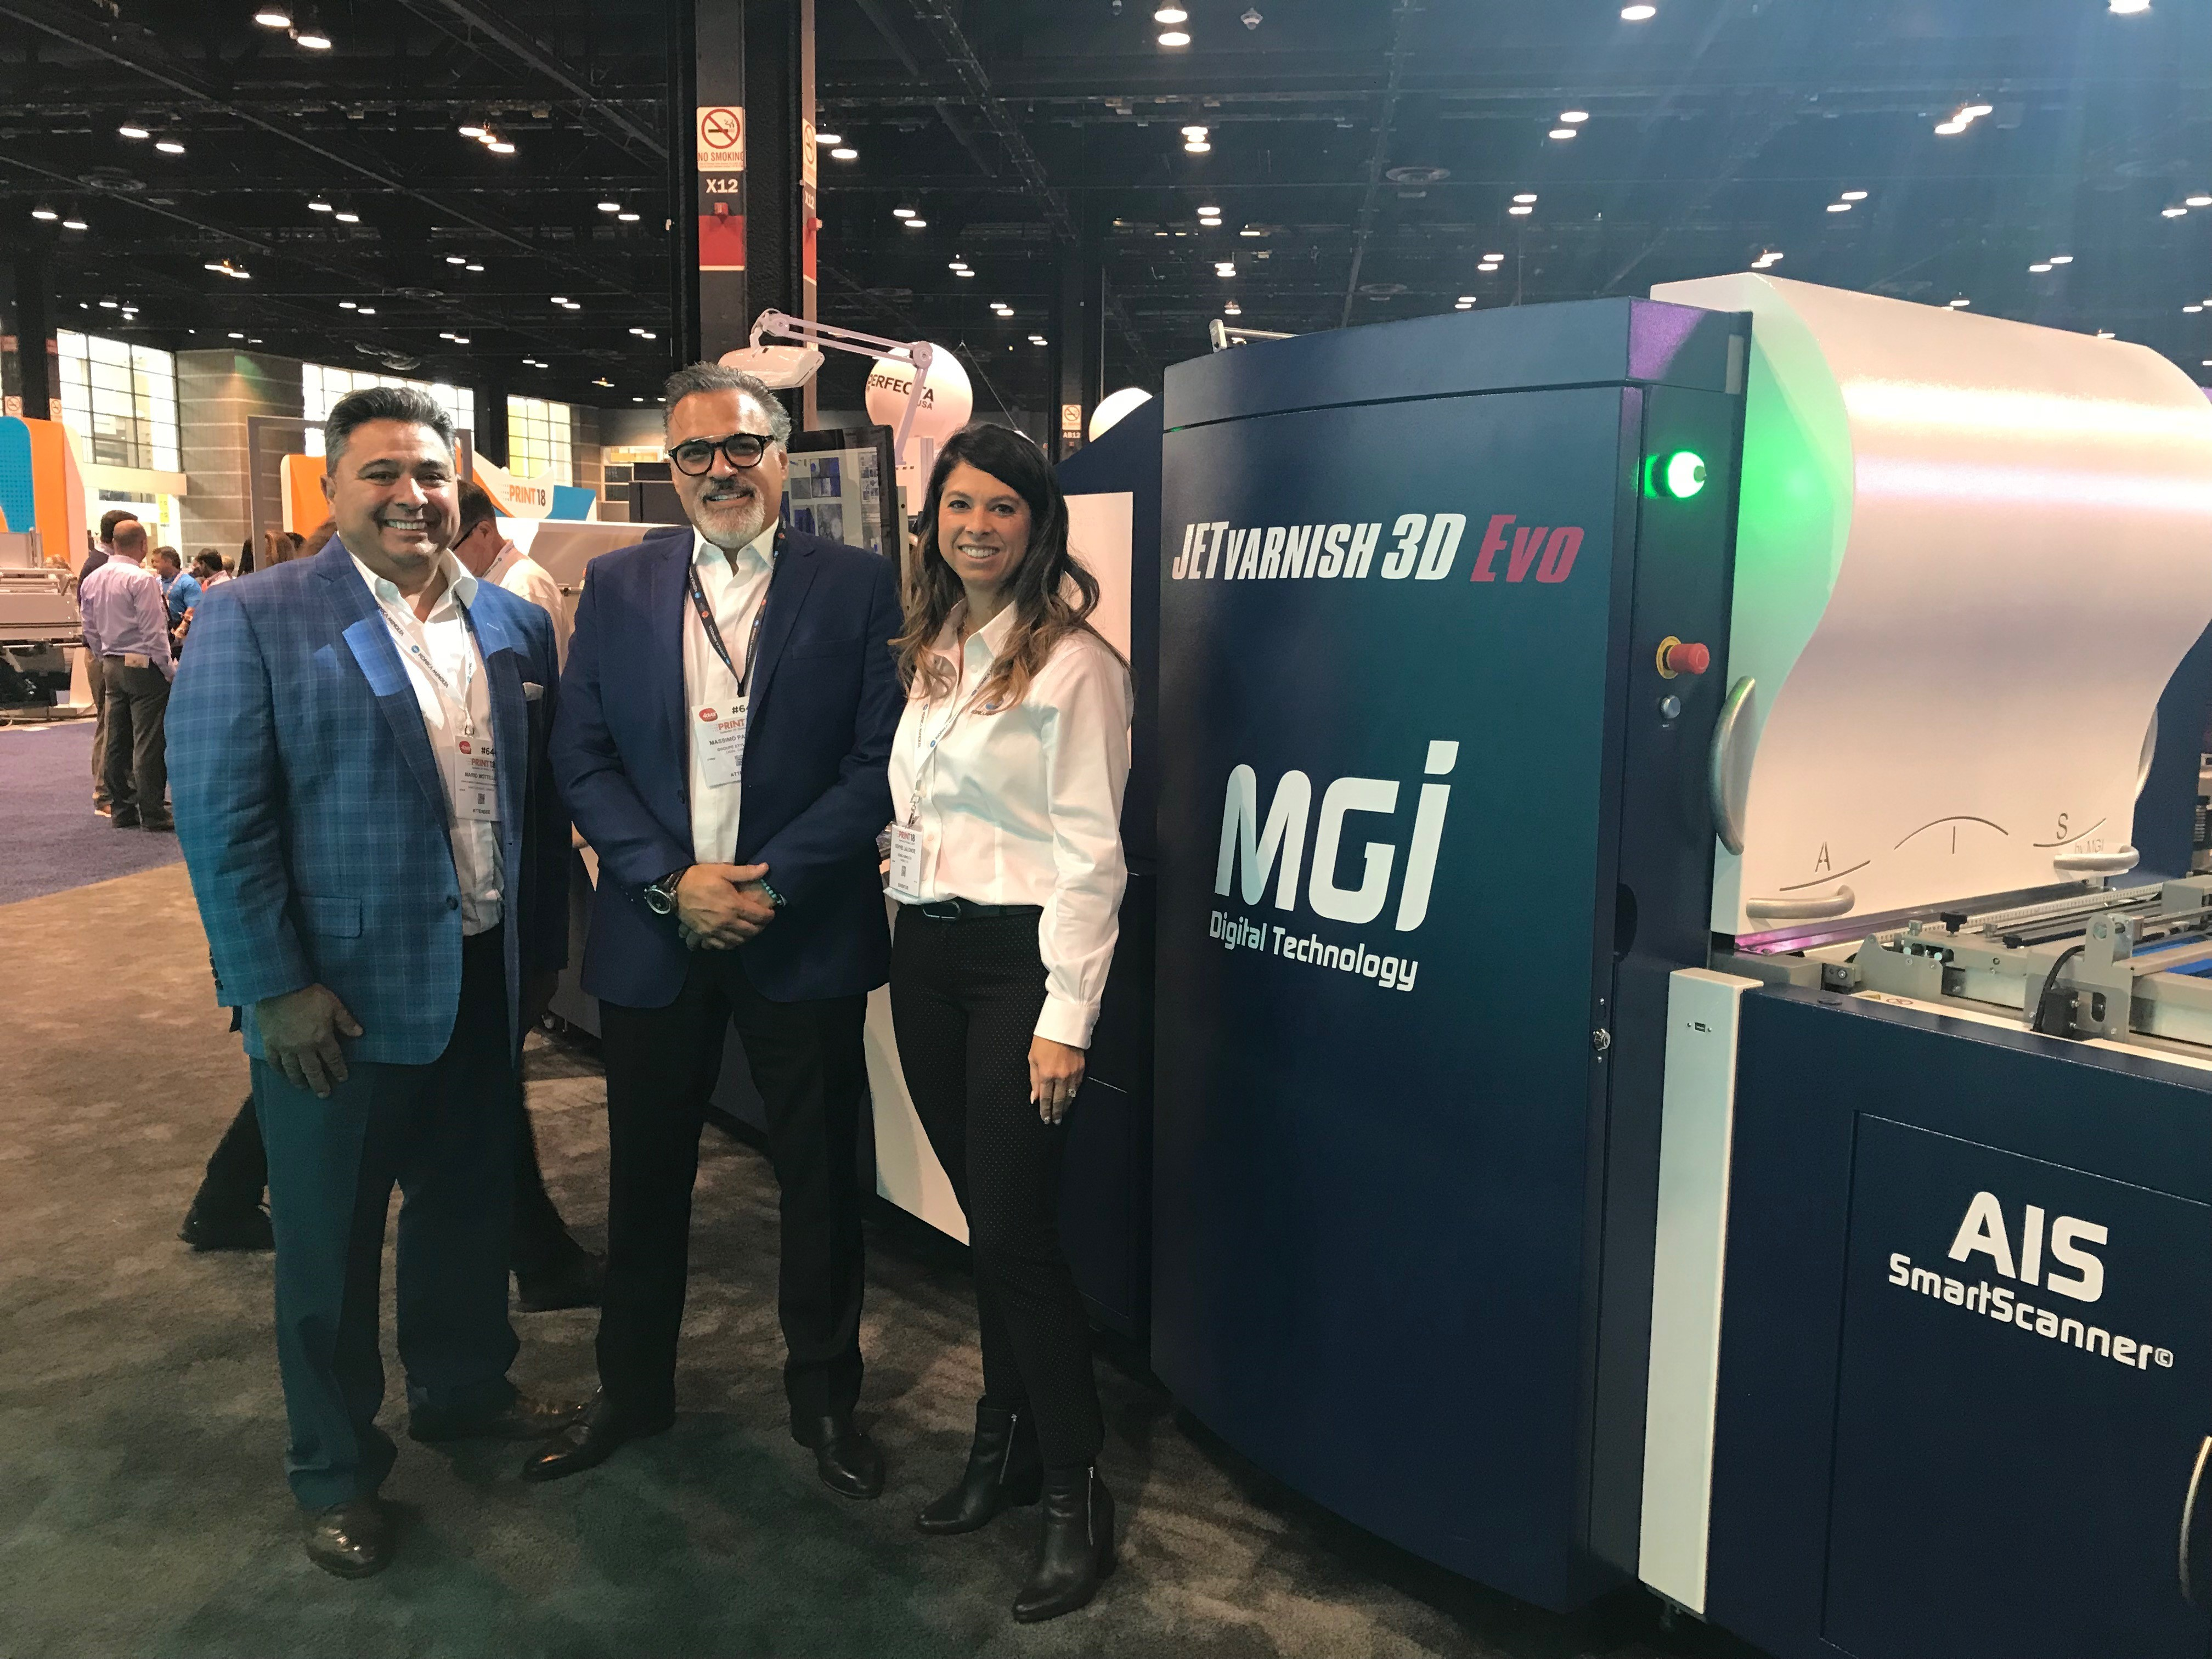 Representatives at Print18 in Chicago, Illinois